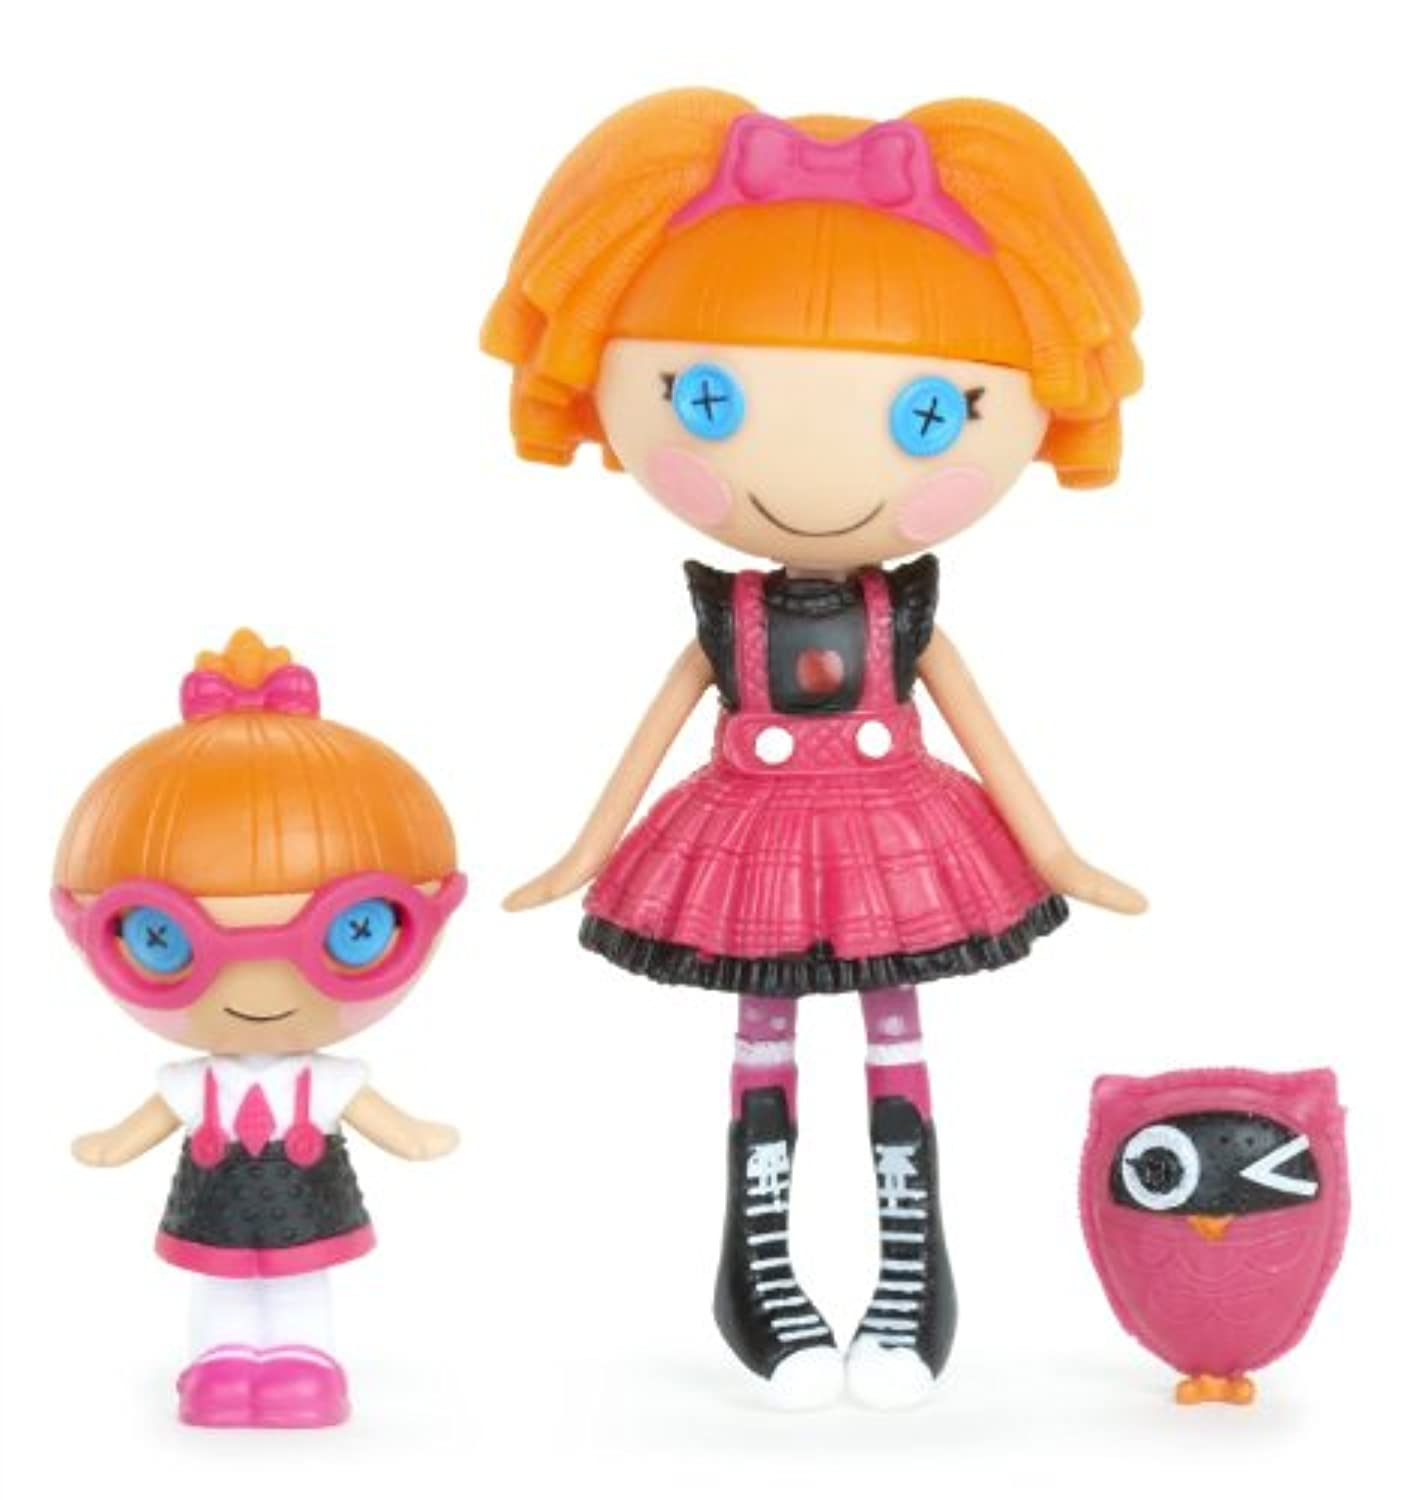 輸入ララループシー人形ドール Lalaloopsy Mini Littles Doll, Bea Spells-A-Lot/Specs Reads-A-Lot [並行輸入品]